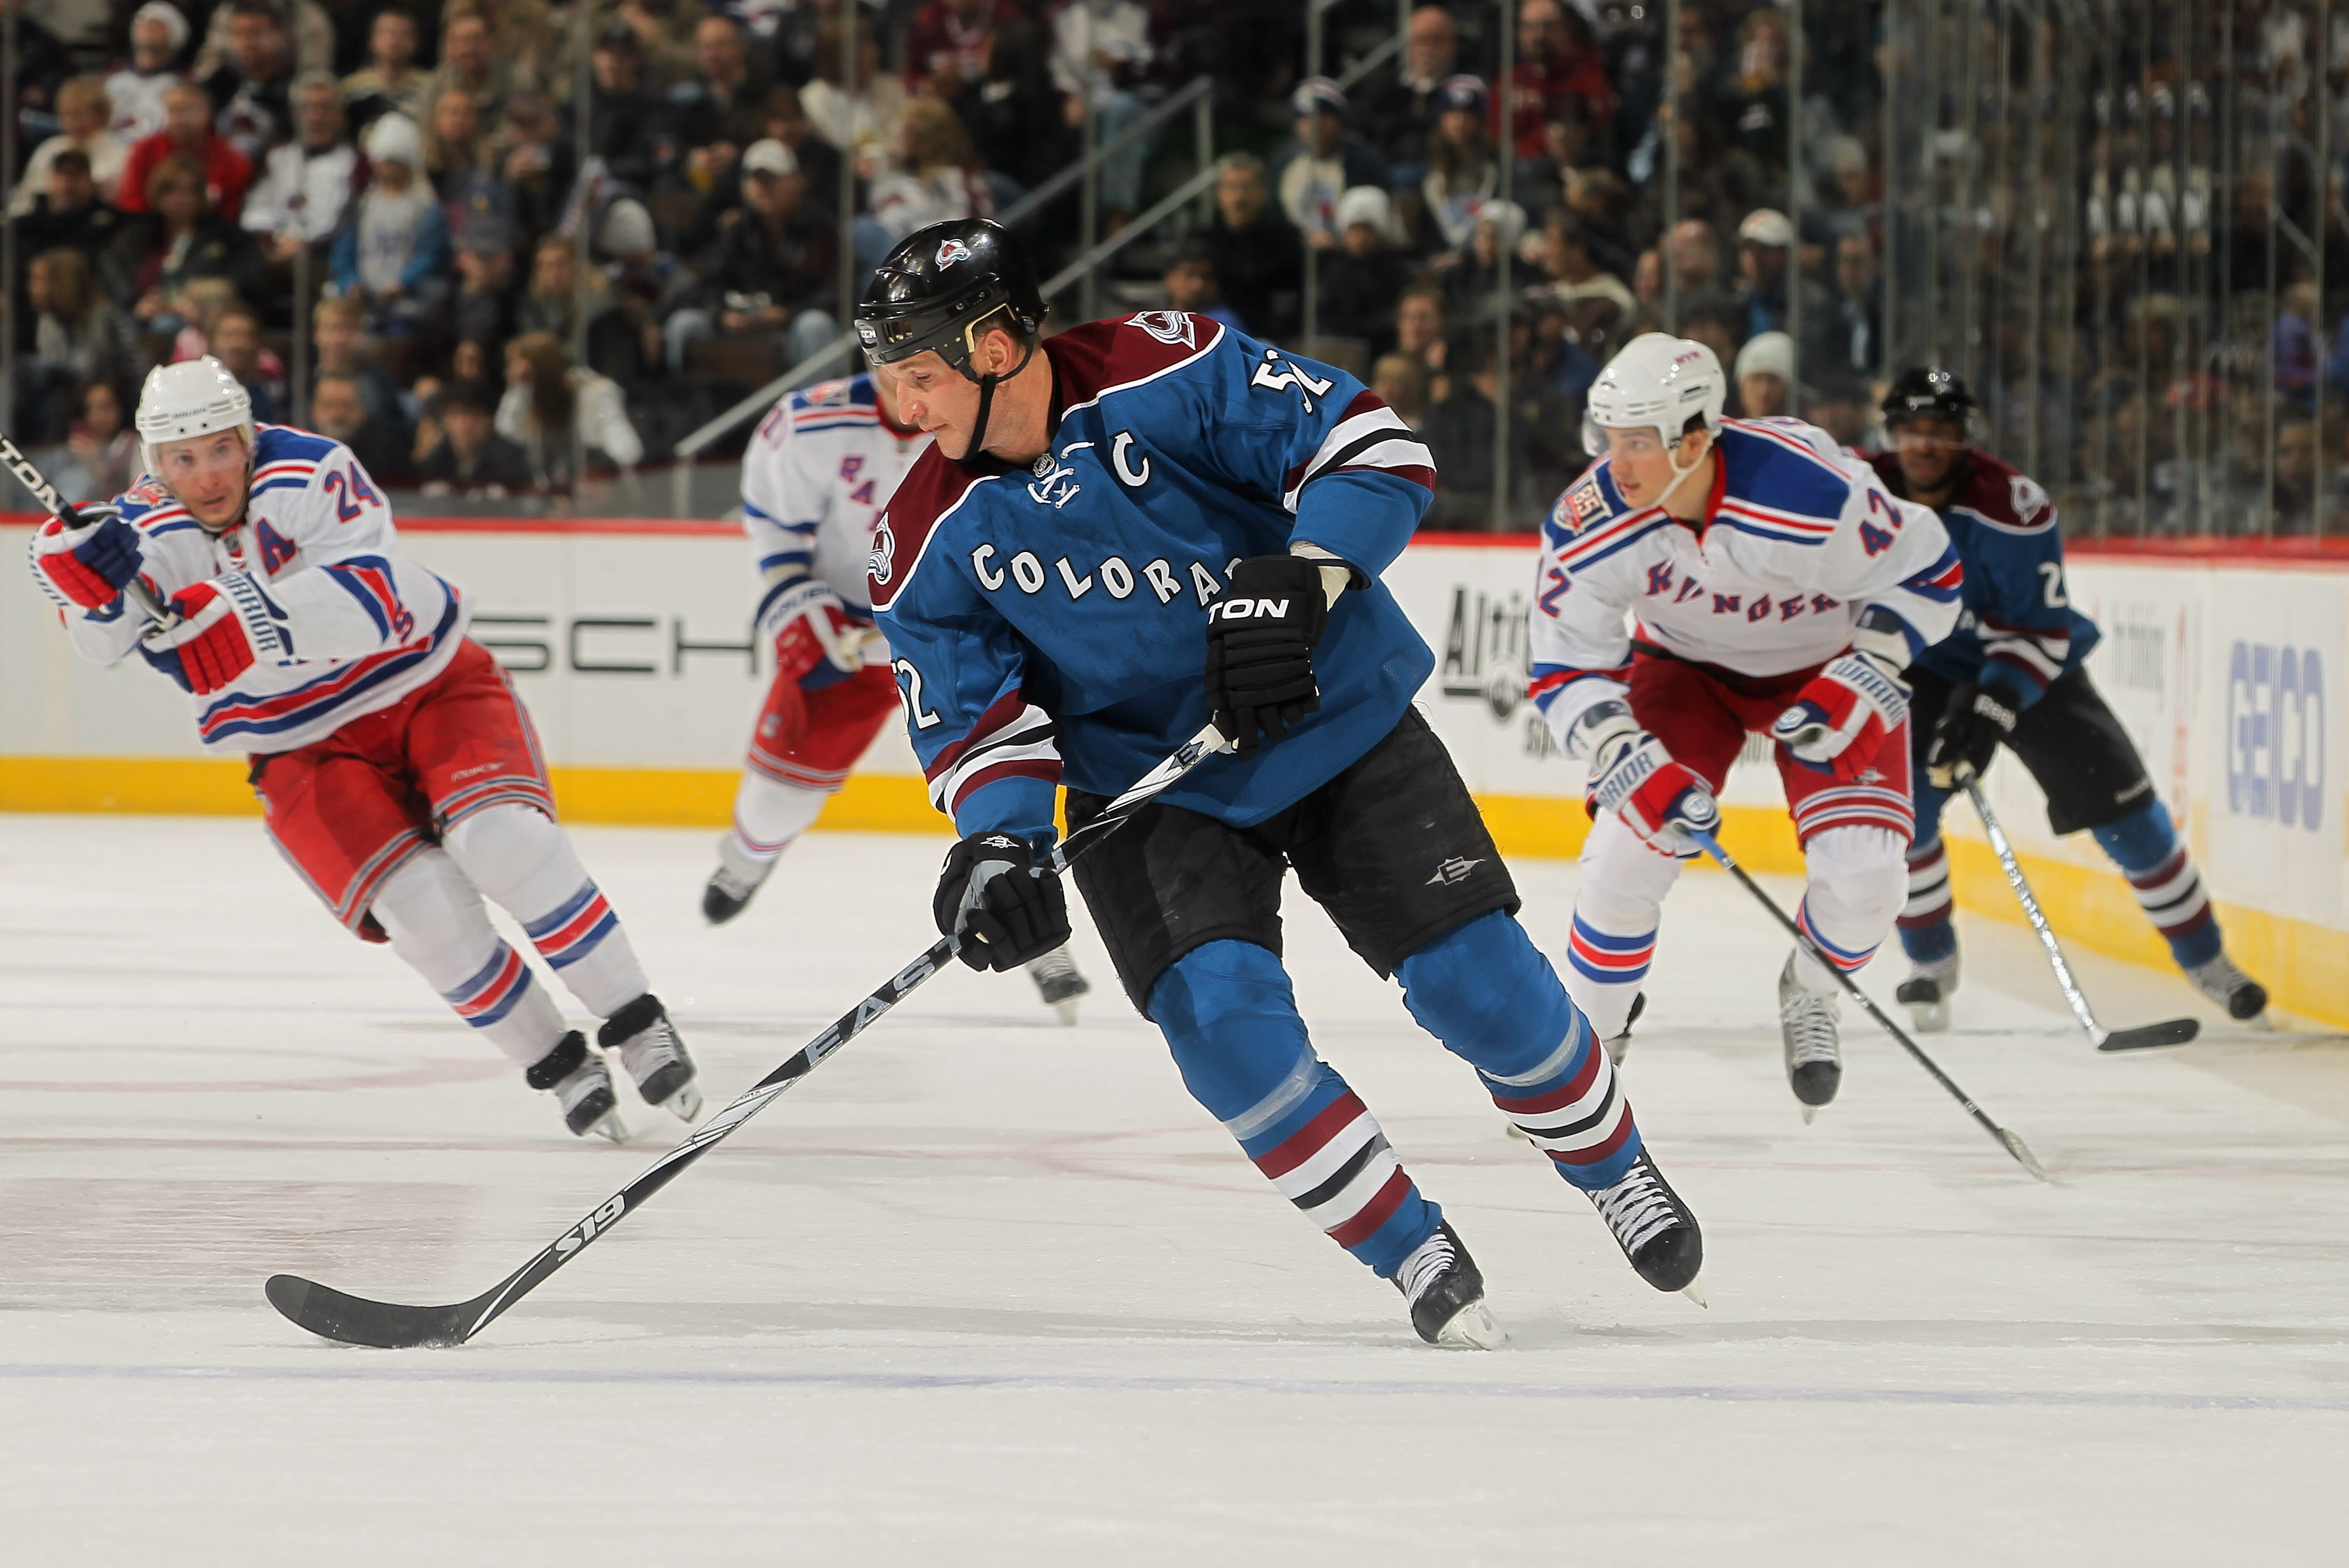 DENVER - NOVEMBER 19:  Adam Foote #52 of the Colorado Avalanche controls the puck against the New York Rangers at the Pepsi Center on November 19, 2010 in Denver, Colorado. The Avalanche defeated the Rangers 5-1.  (Photo by Doug Pensinger/Getty Images)